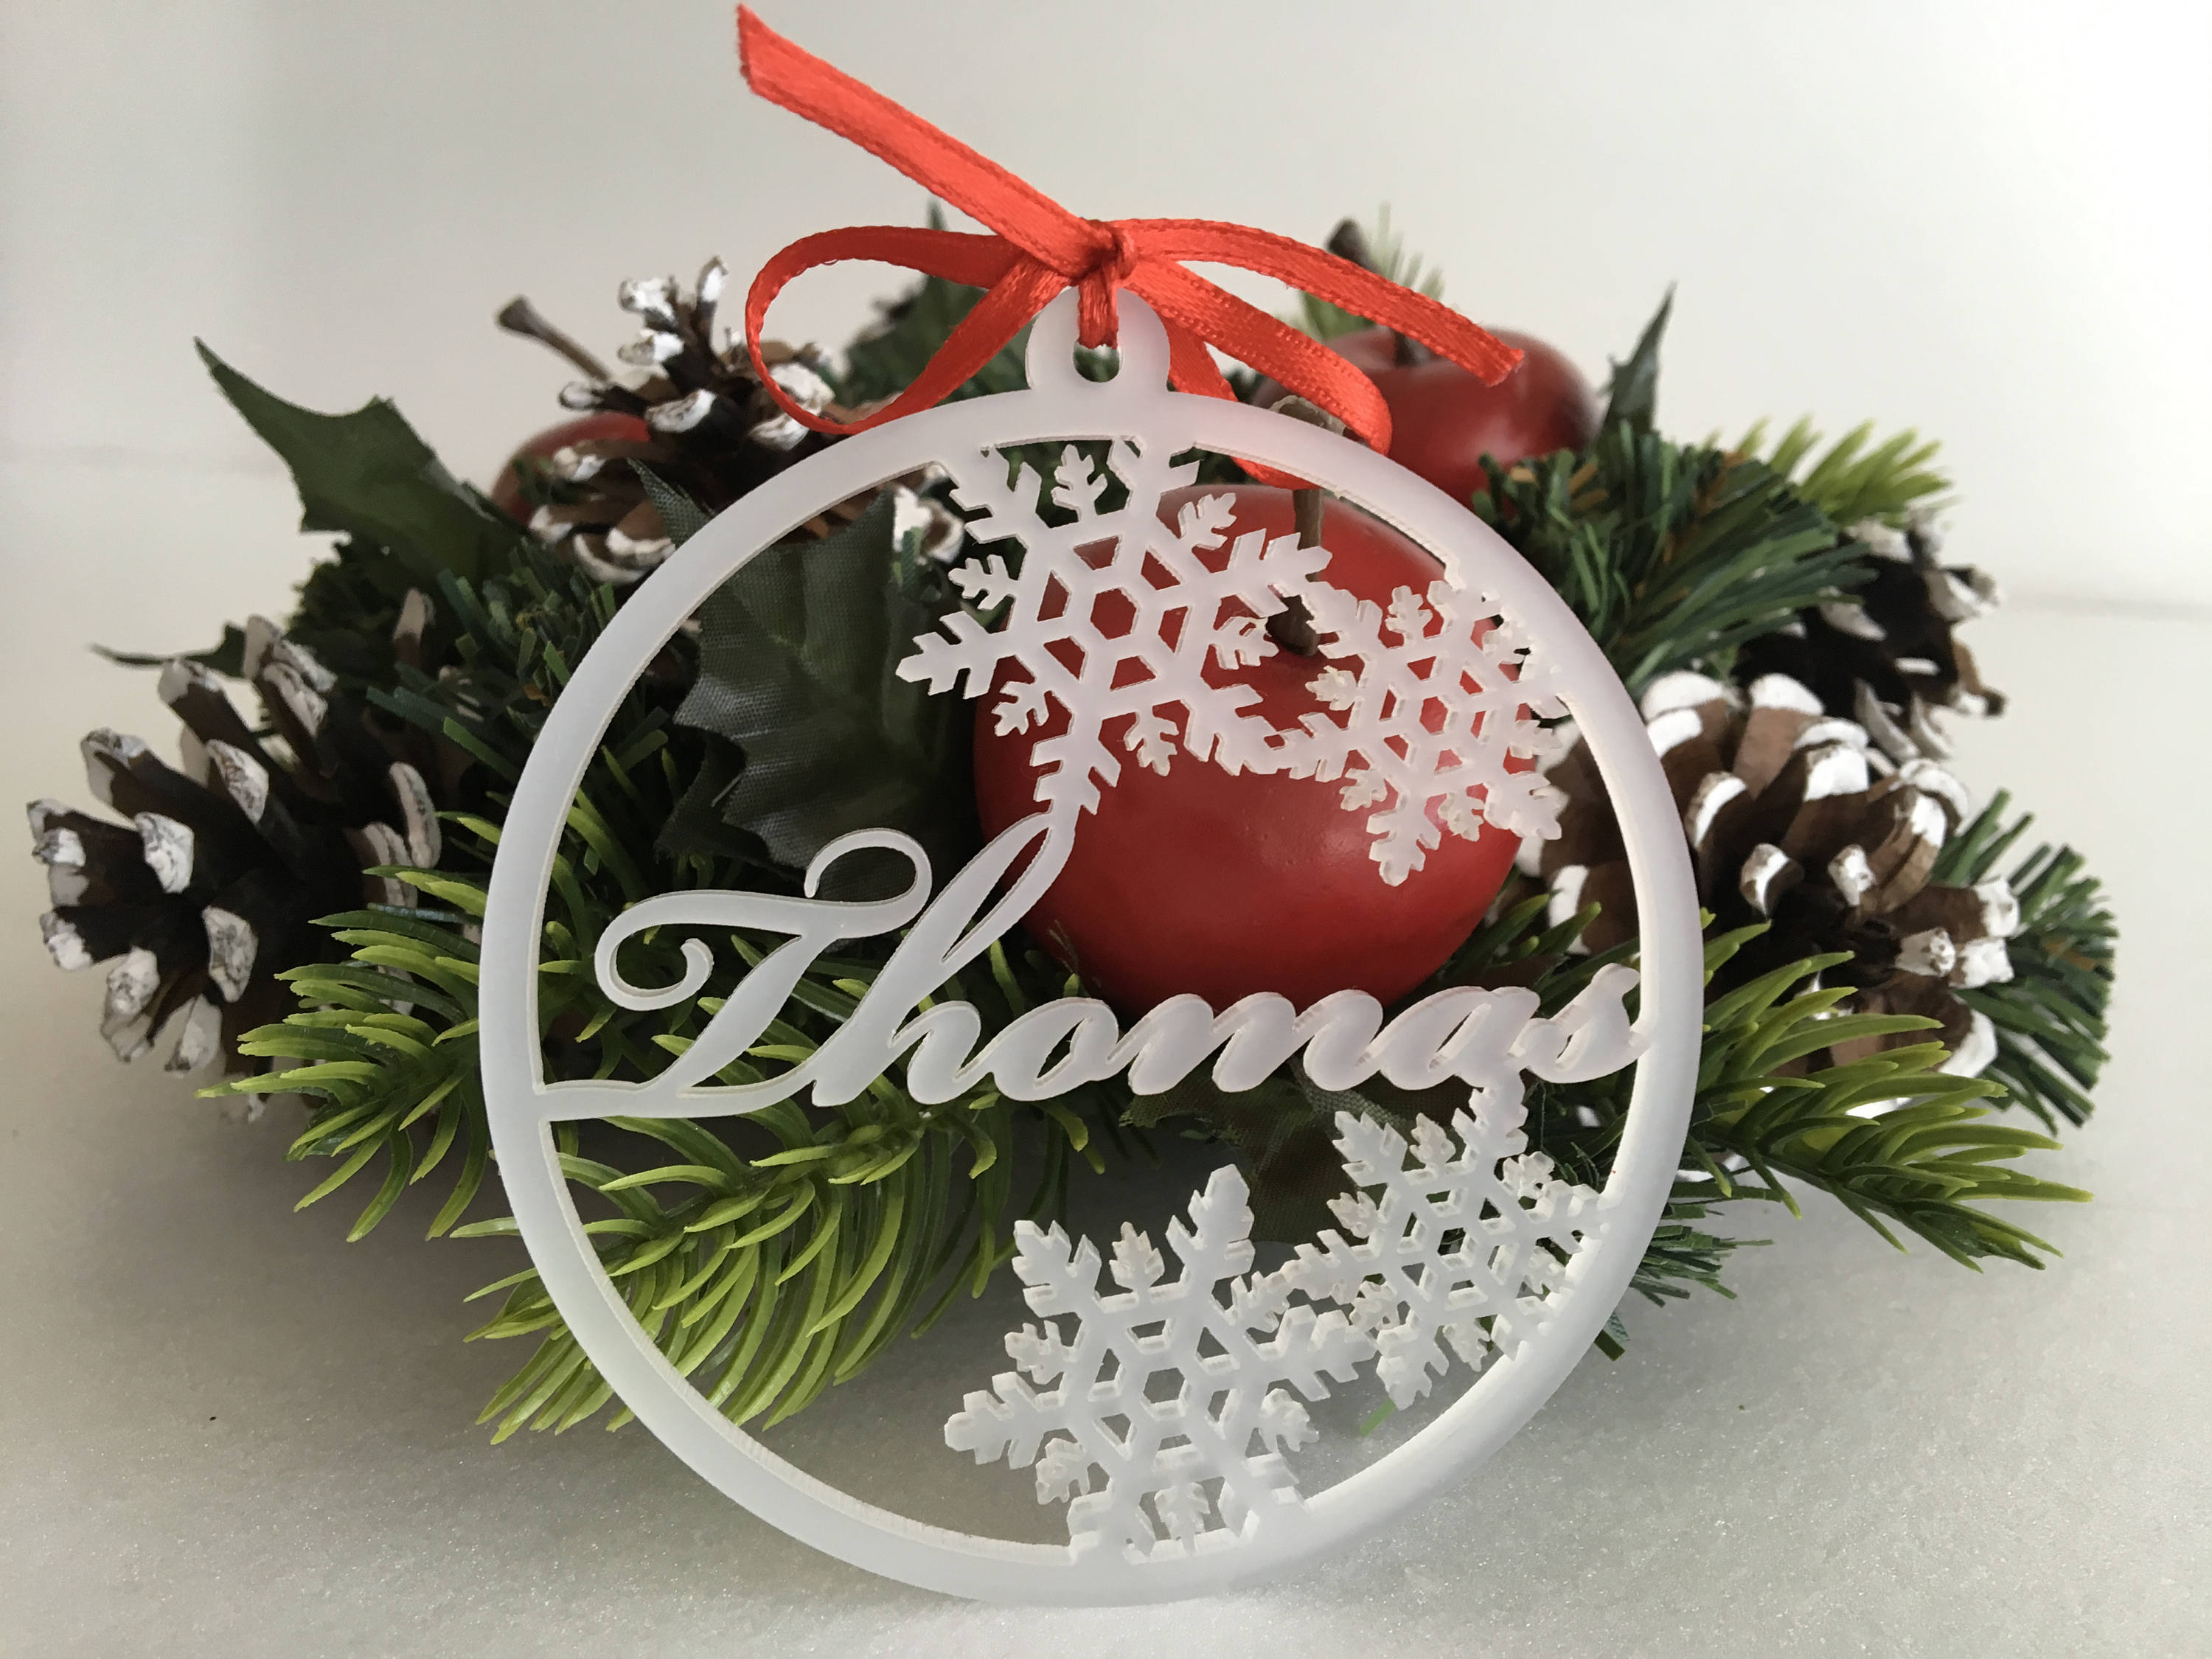 personalised christmas baubles frosted white acrylic bauble xmas tree decorations custom name ornaments snowflakes custom family gift idea